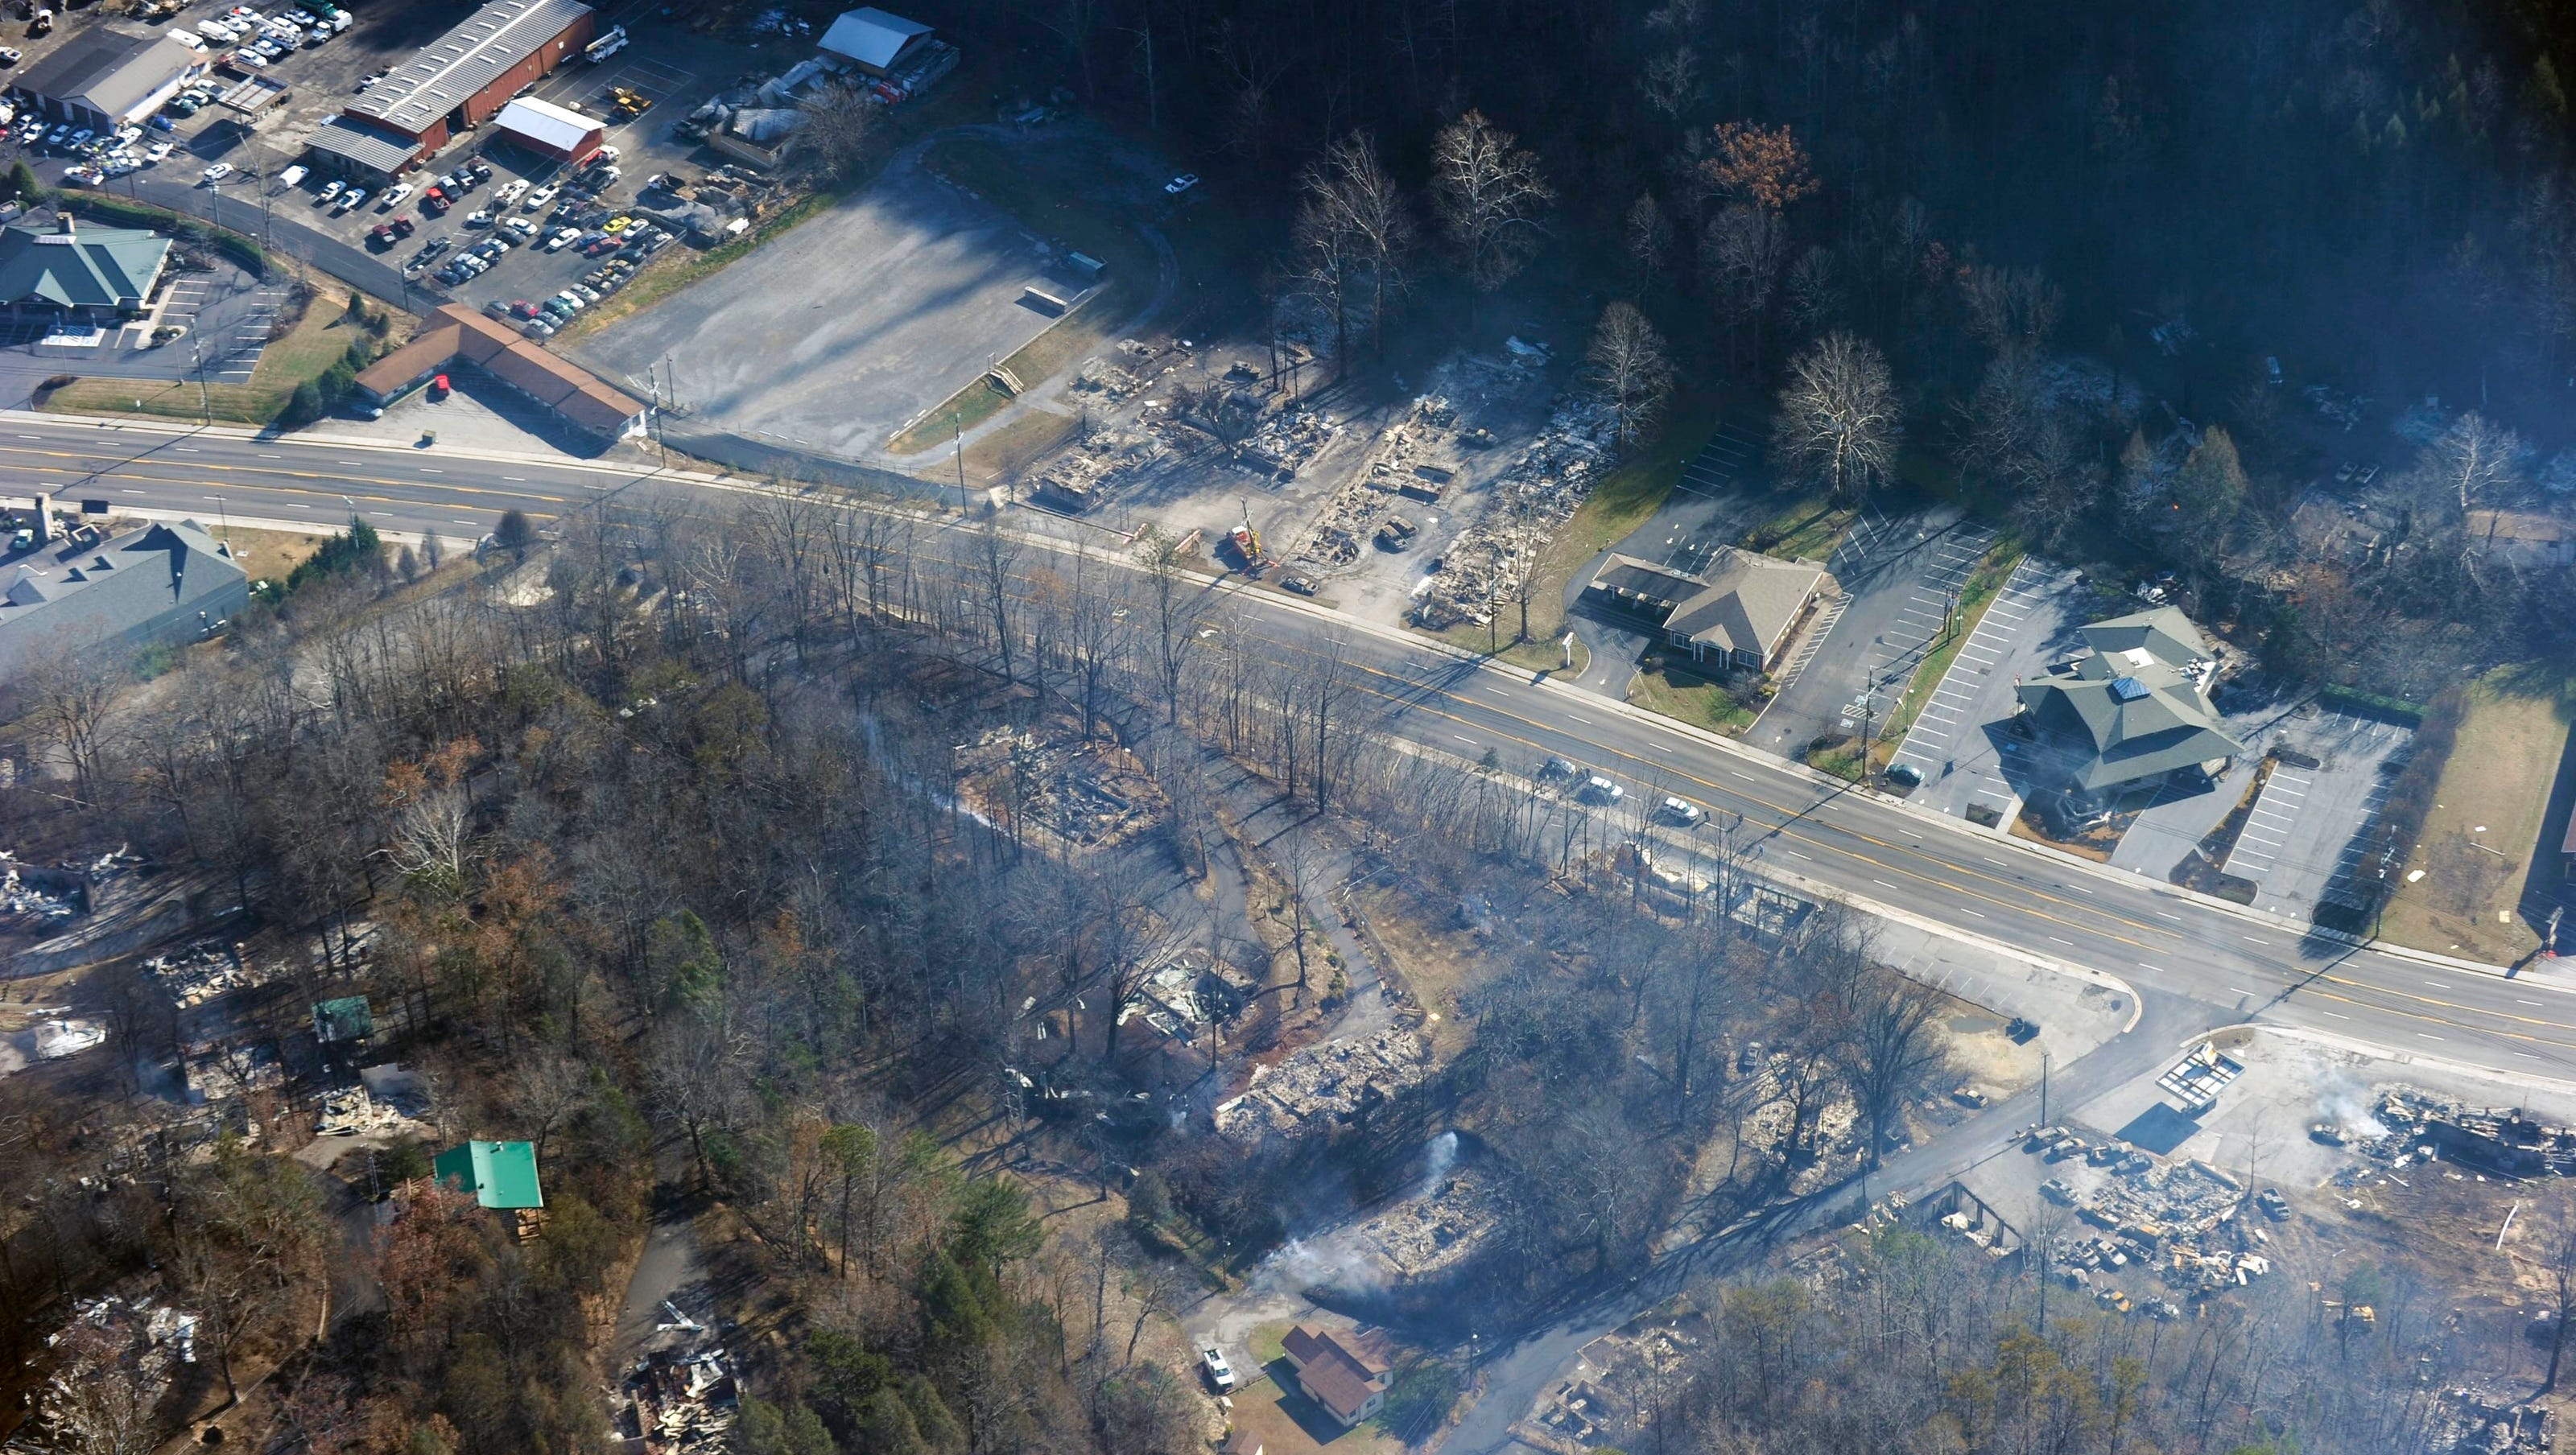 updated list: more structures damaged, destroyed by fire